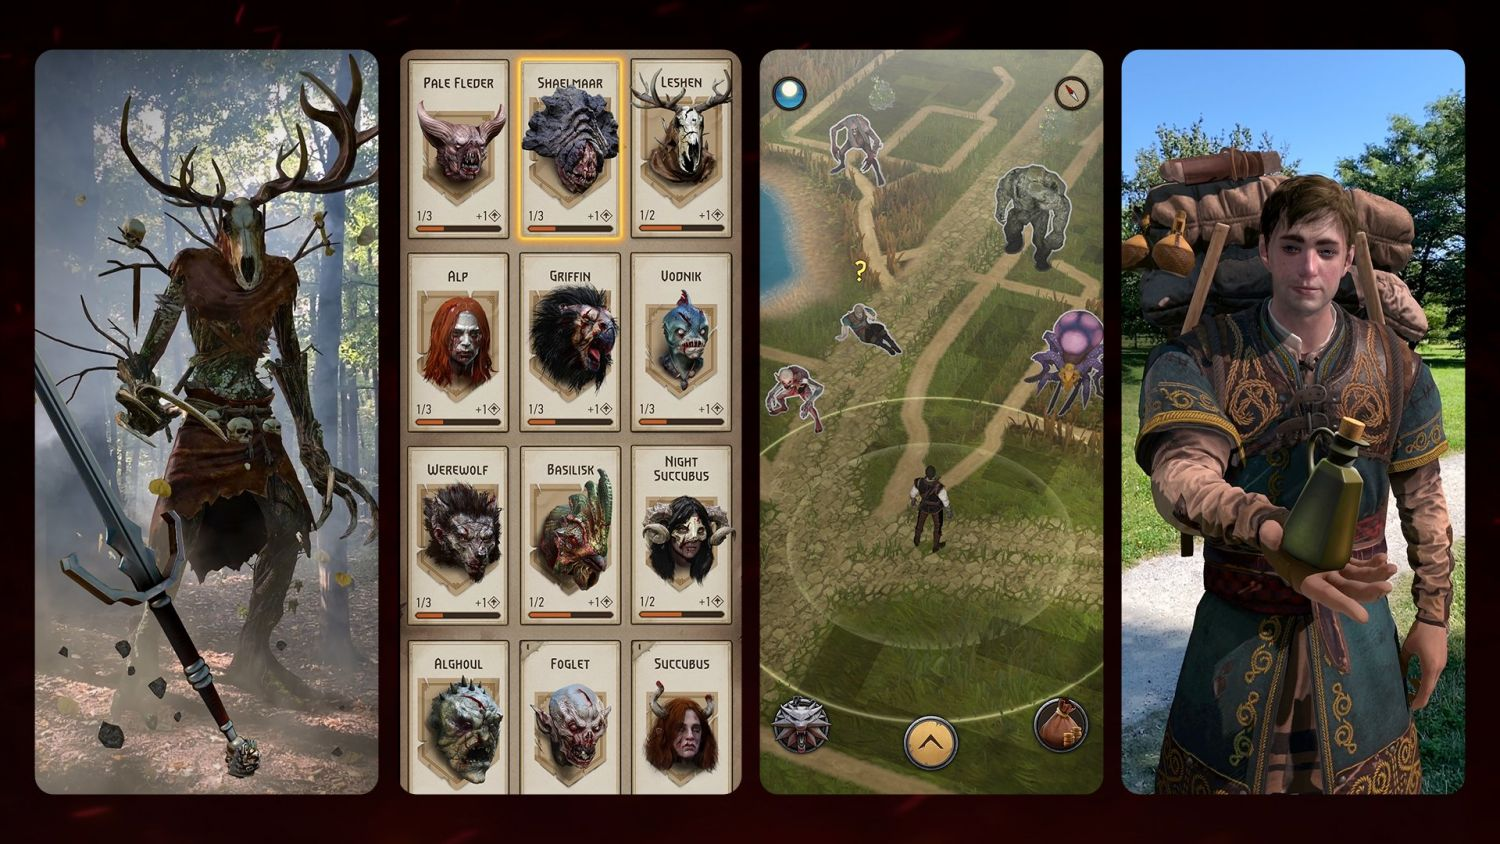 The Witcher: Monster Slayer is The Witcher 3 meets Pokemon Go